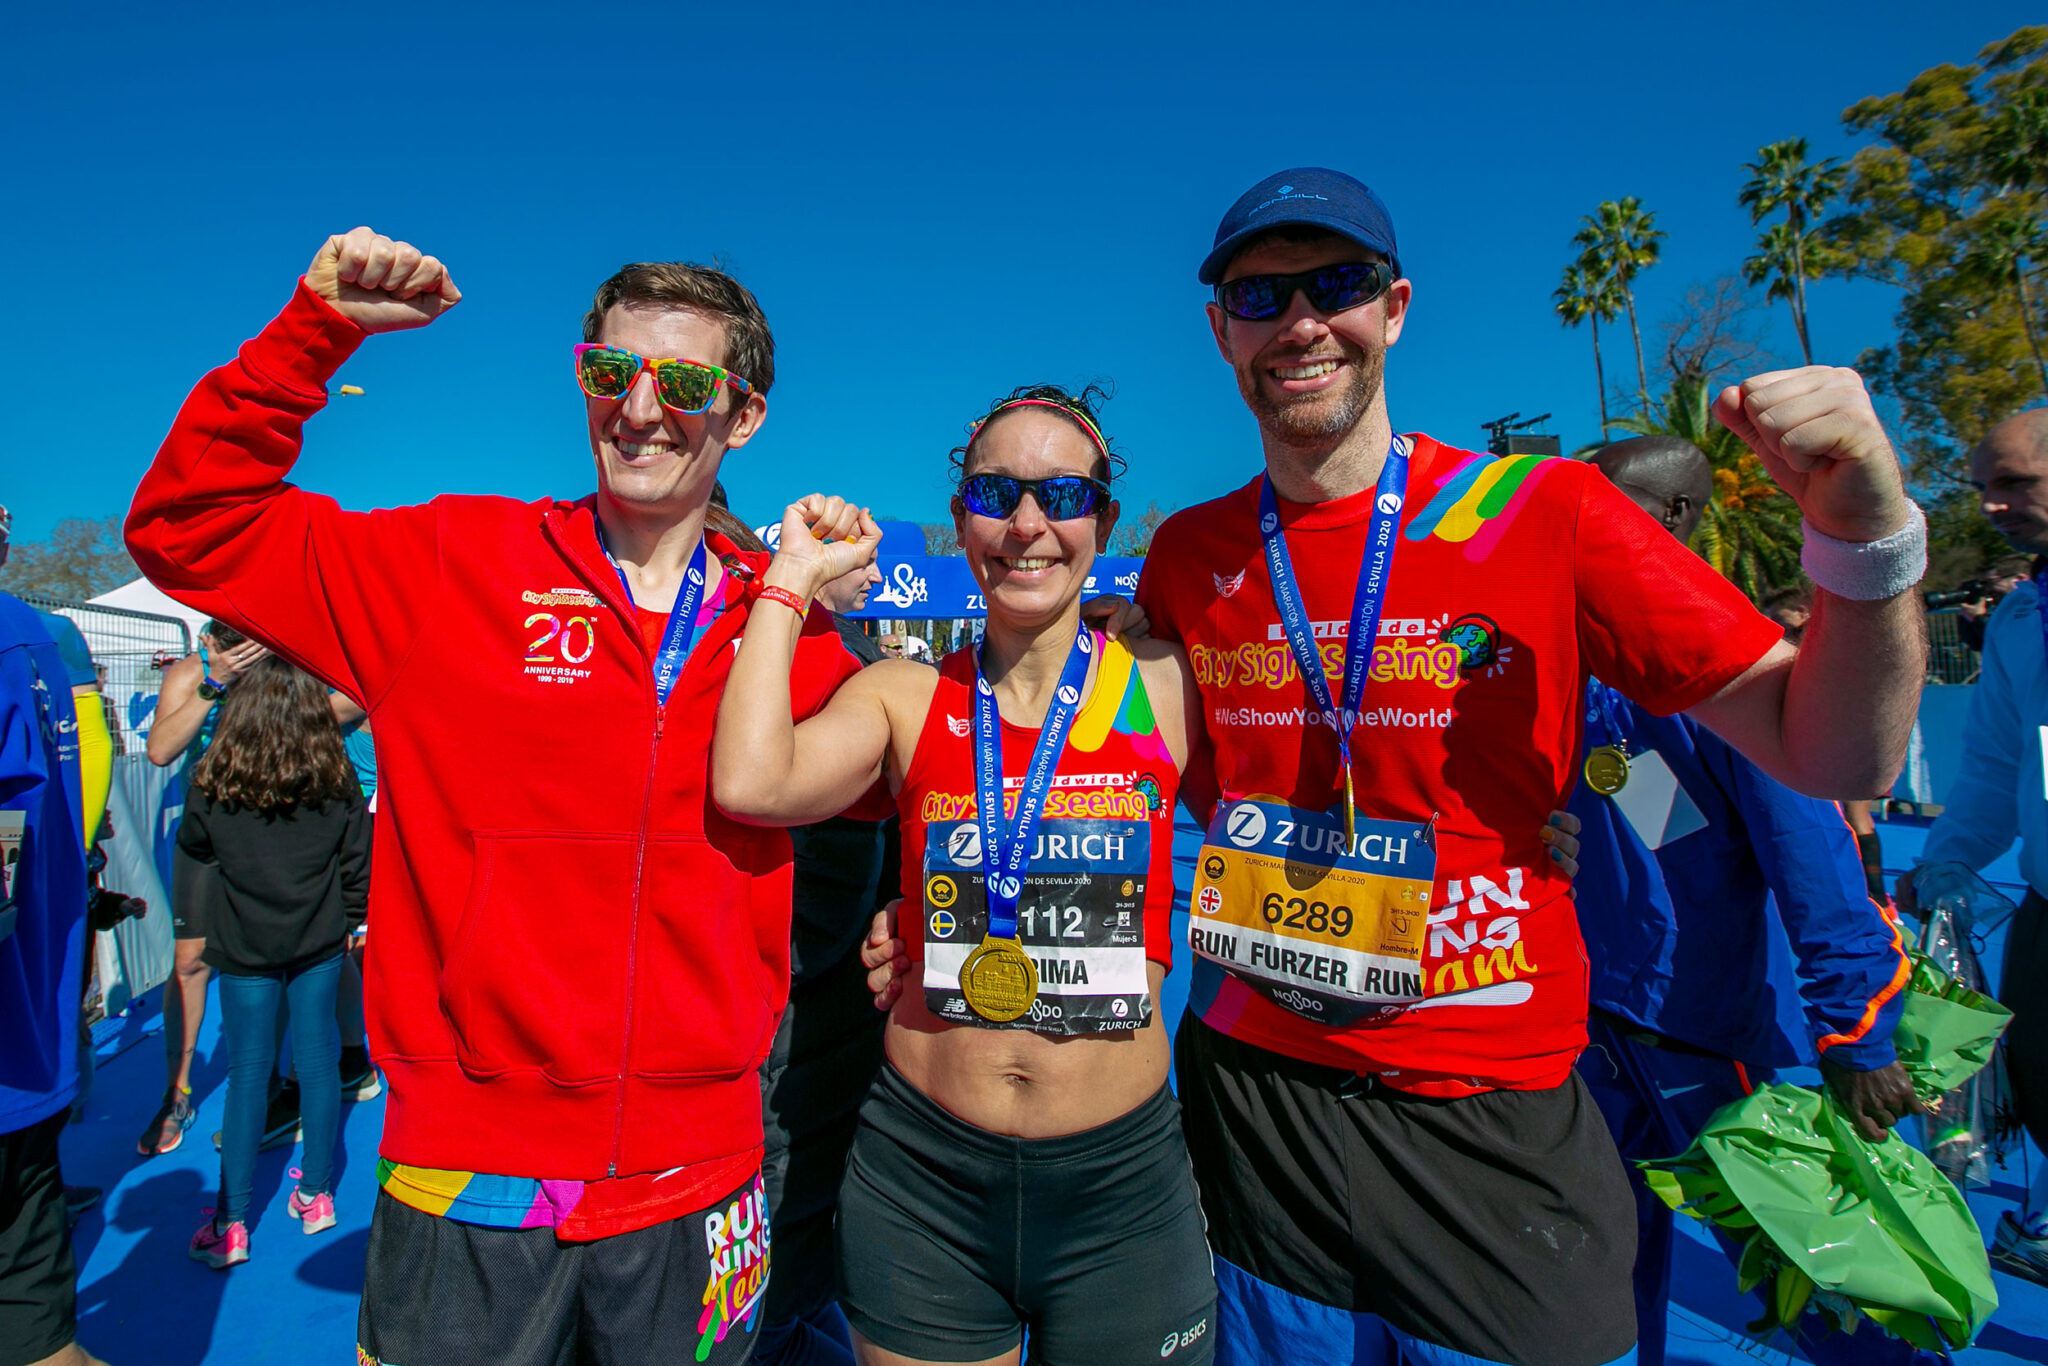 city sightseeing marathon challenge winners 5th edition